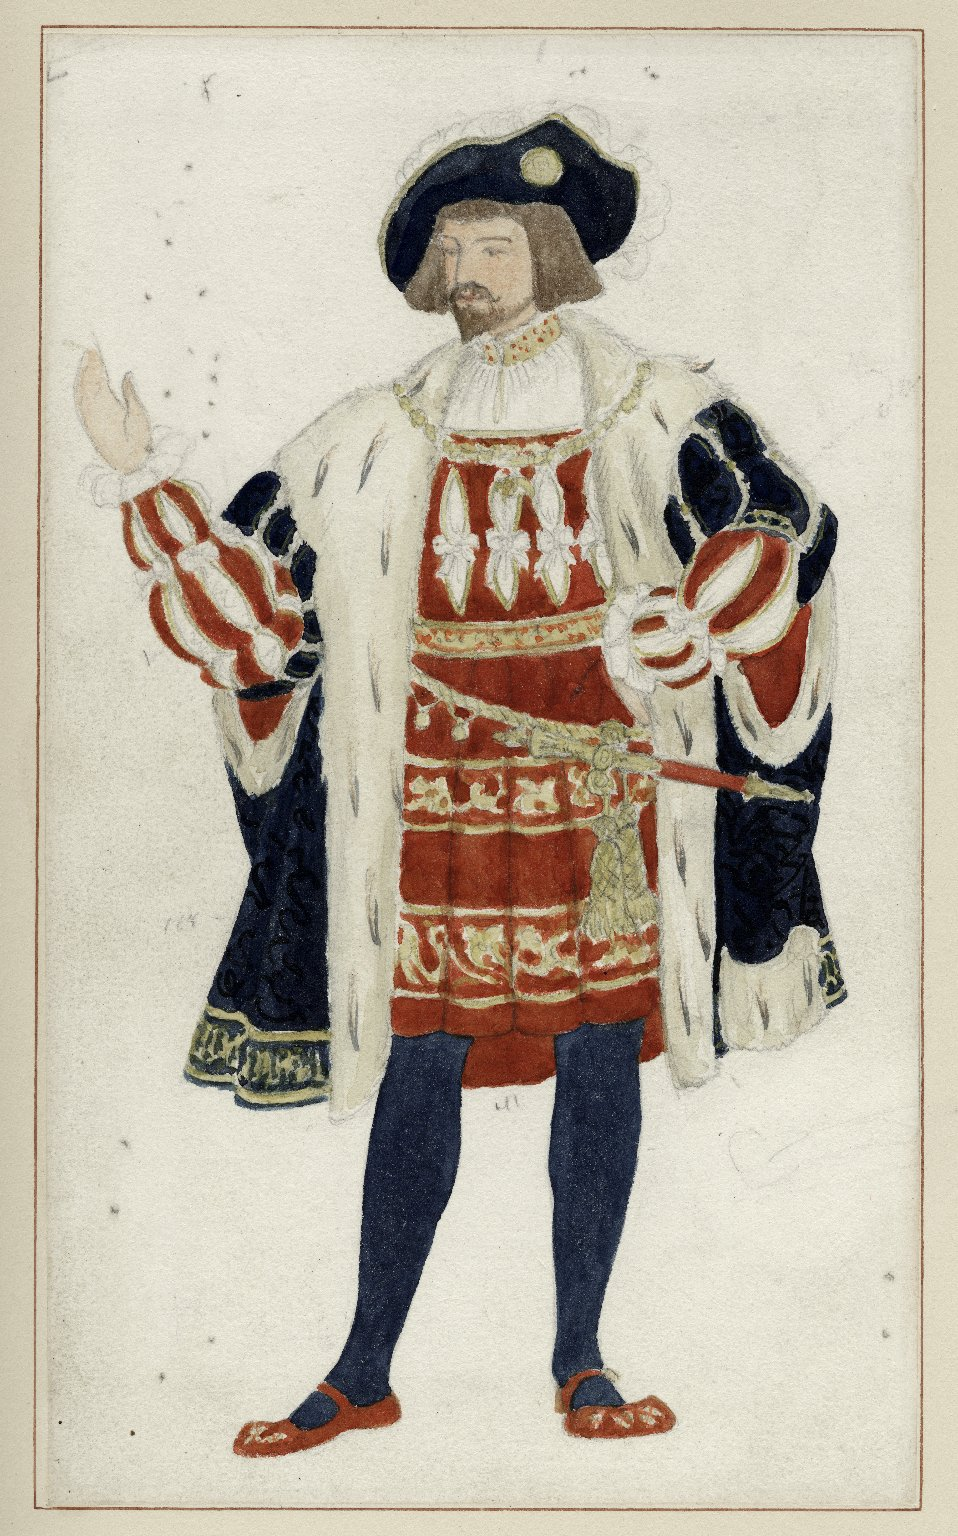 Watercolor drawing for costume of King of Navarre [in Augustin Daly's production of Love's Labour's Lost]